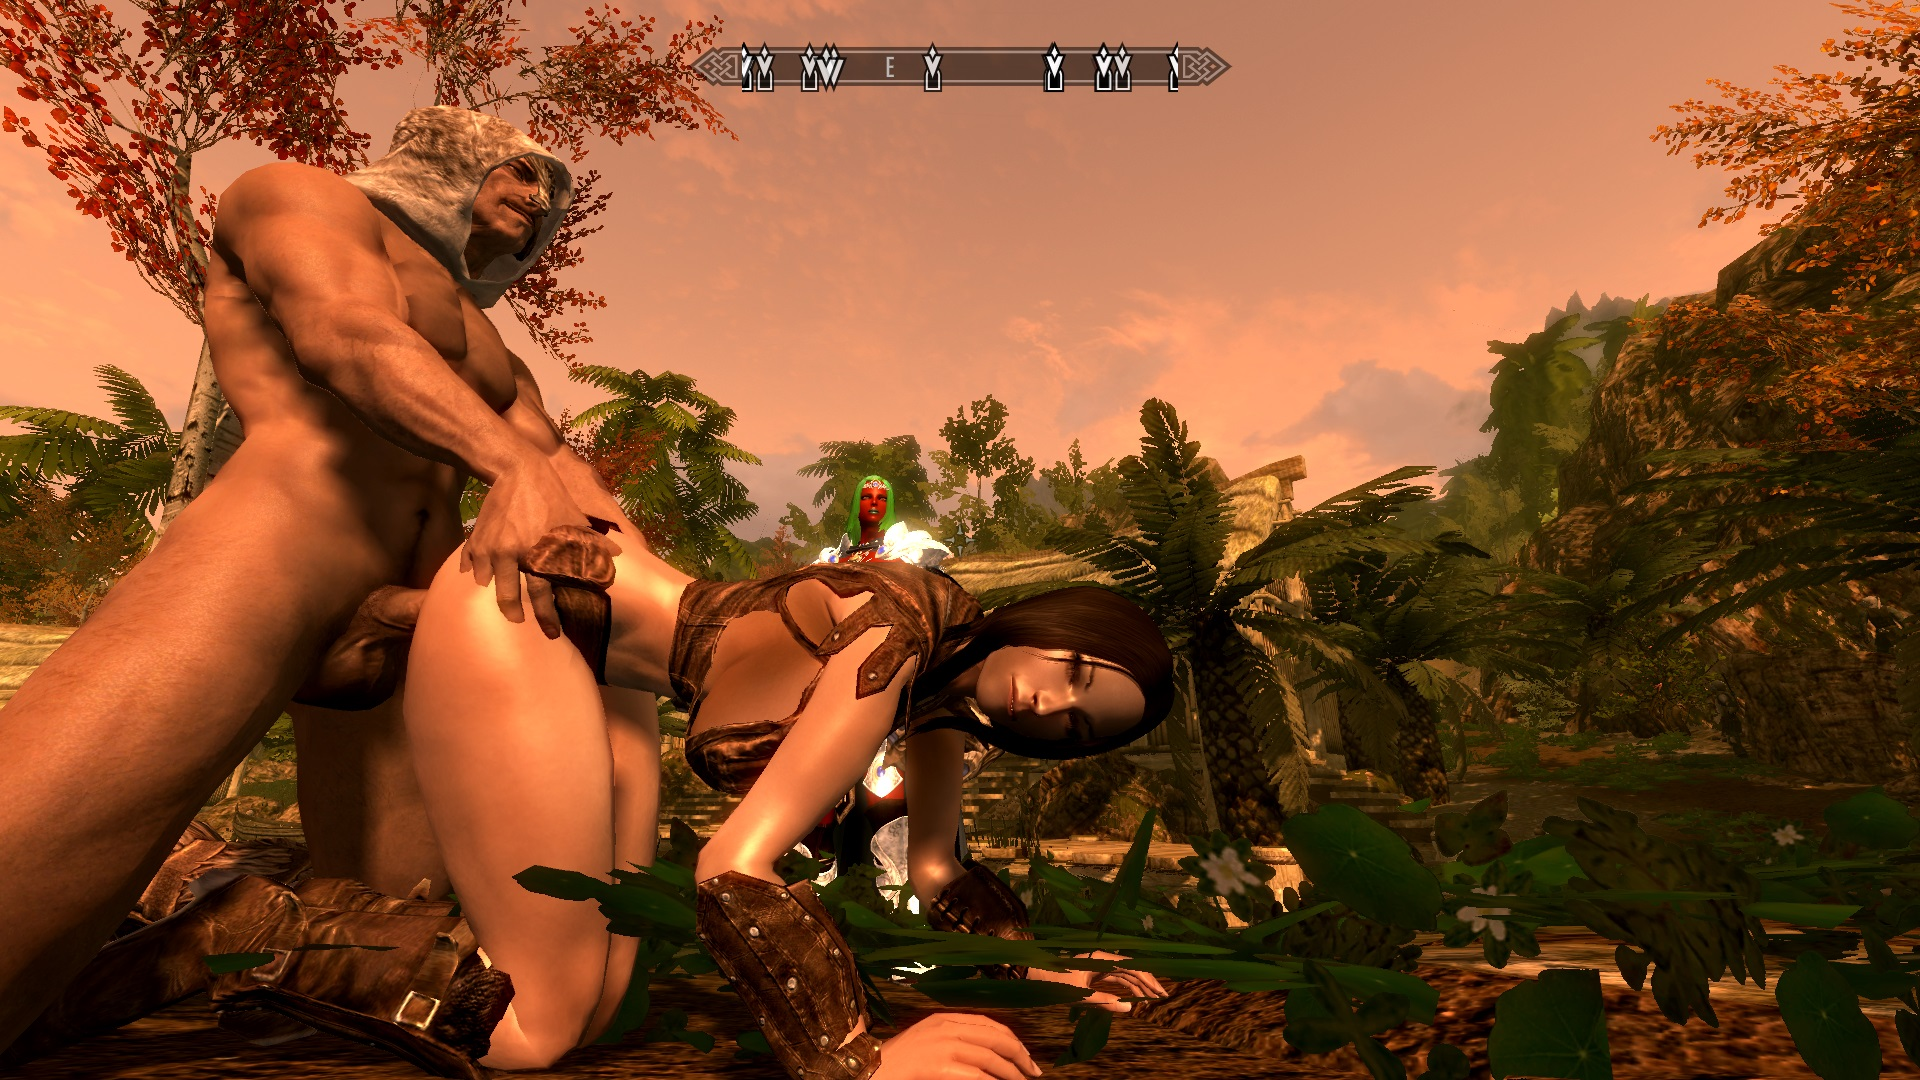 Skyrim succubus boobs adult images